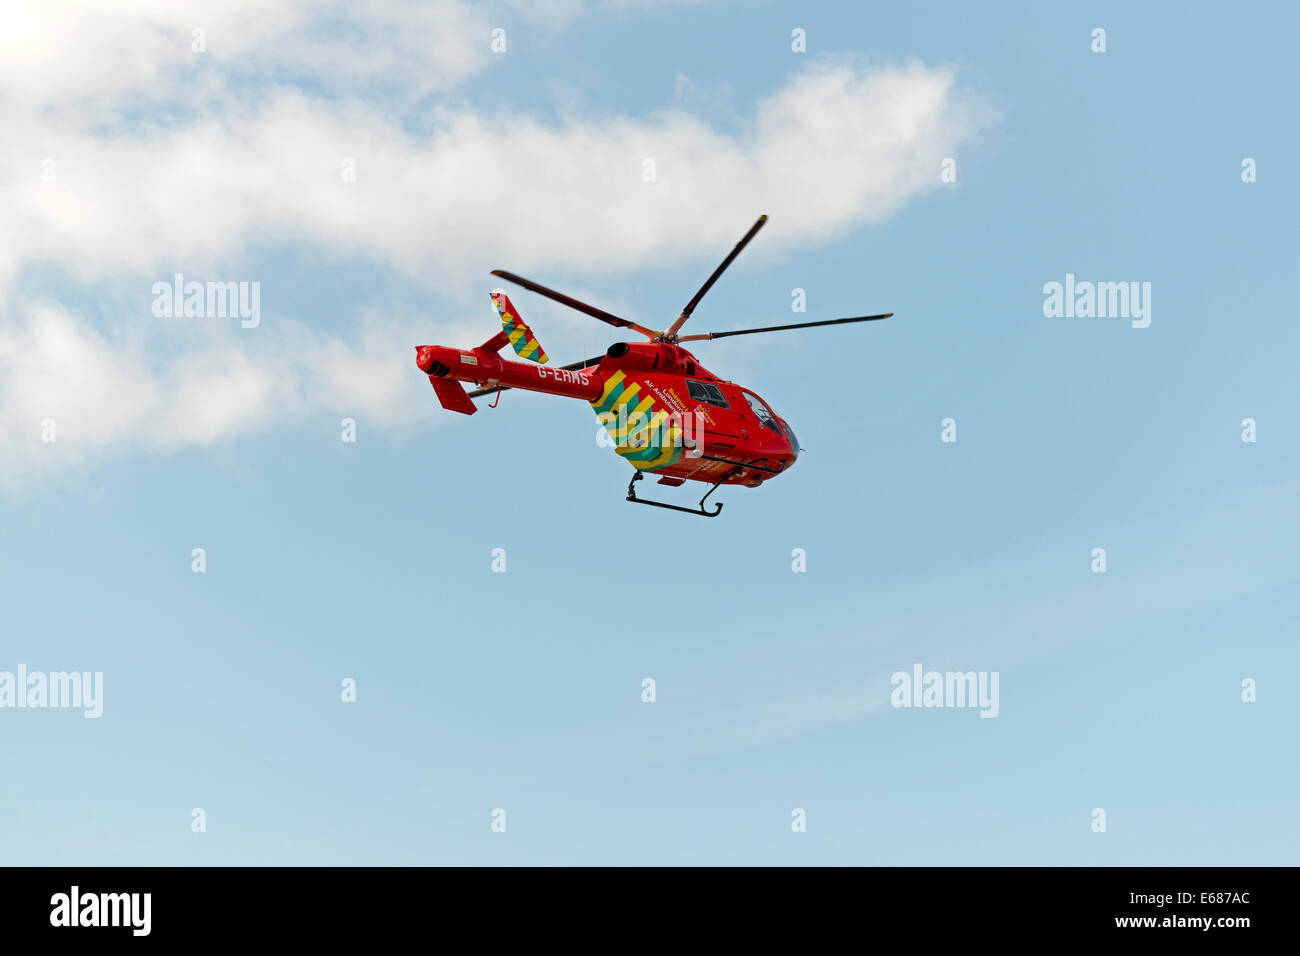 London Red Air Ambulance Helicopter in Flight - Stock Image